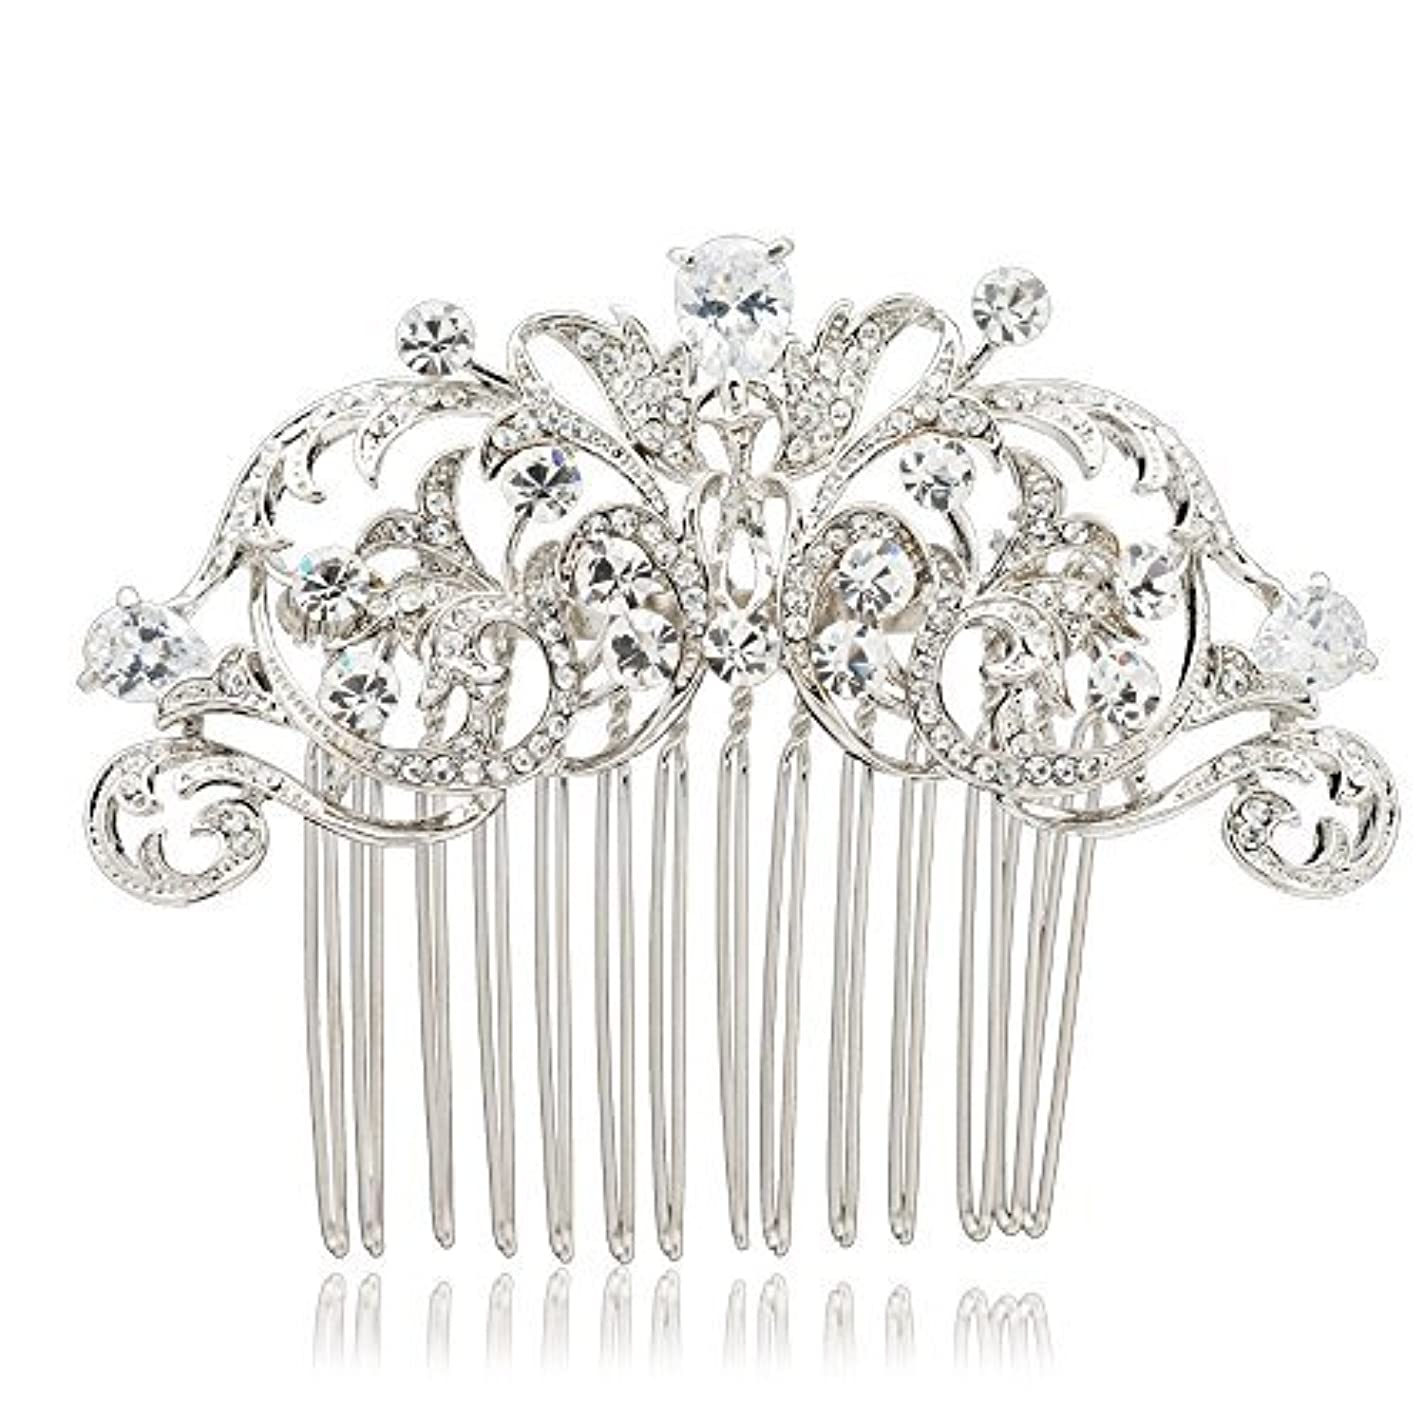 始まり付き添い人副産物SEPBRIDALS Crystal Rhinestone Hair Side Comb Pins Bridal Wedding Women Hair Accessories Jewelry 2253R [並行輸入品]